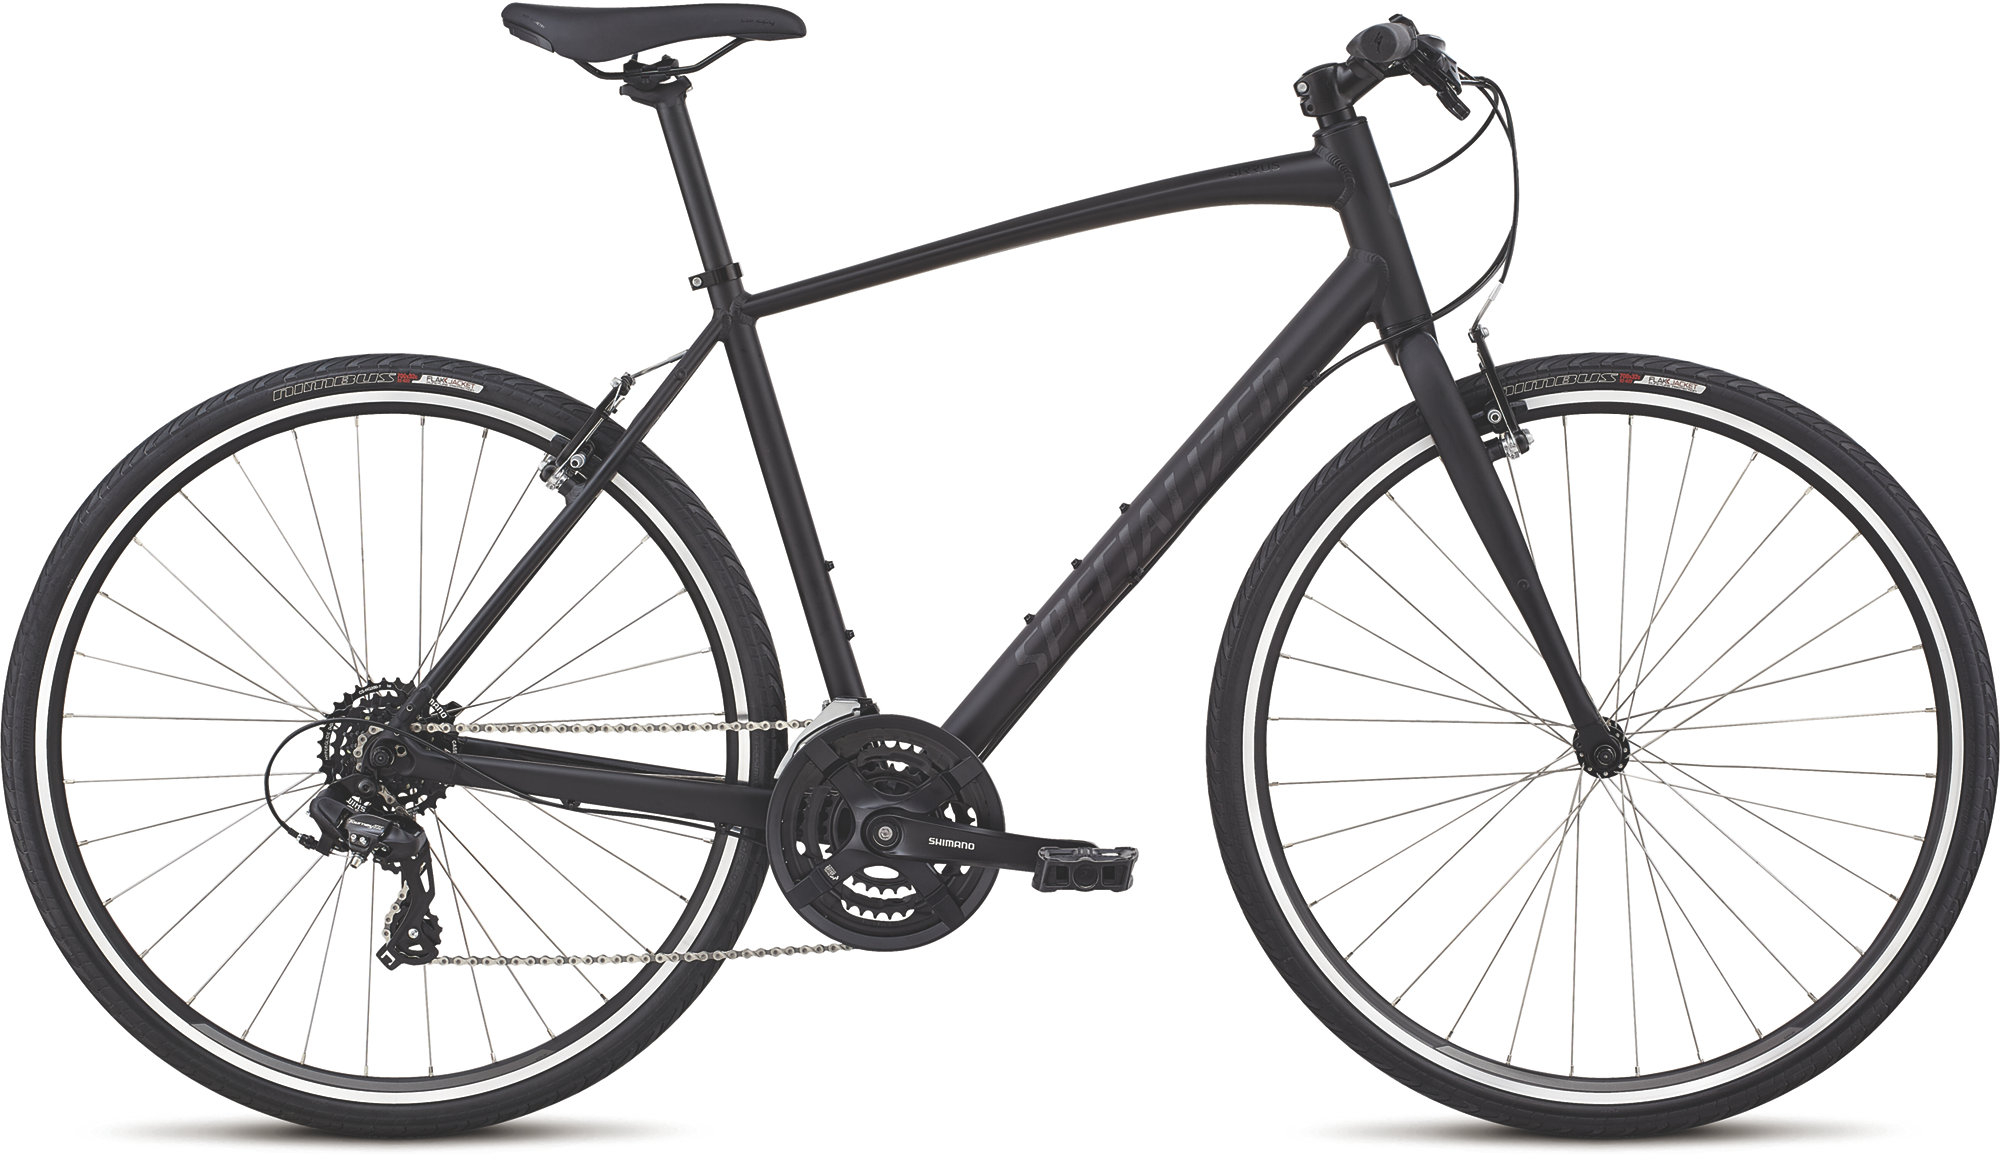 Hybrid and City Bike Deal  Specialized Sirrus Alloy Hybrid Bike 2020 Black